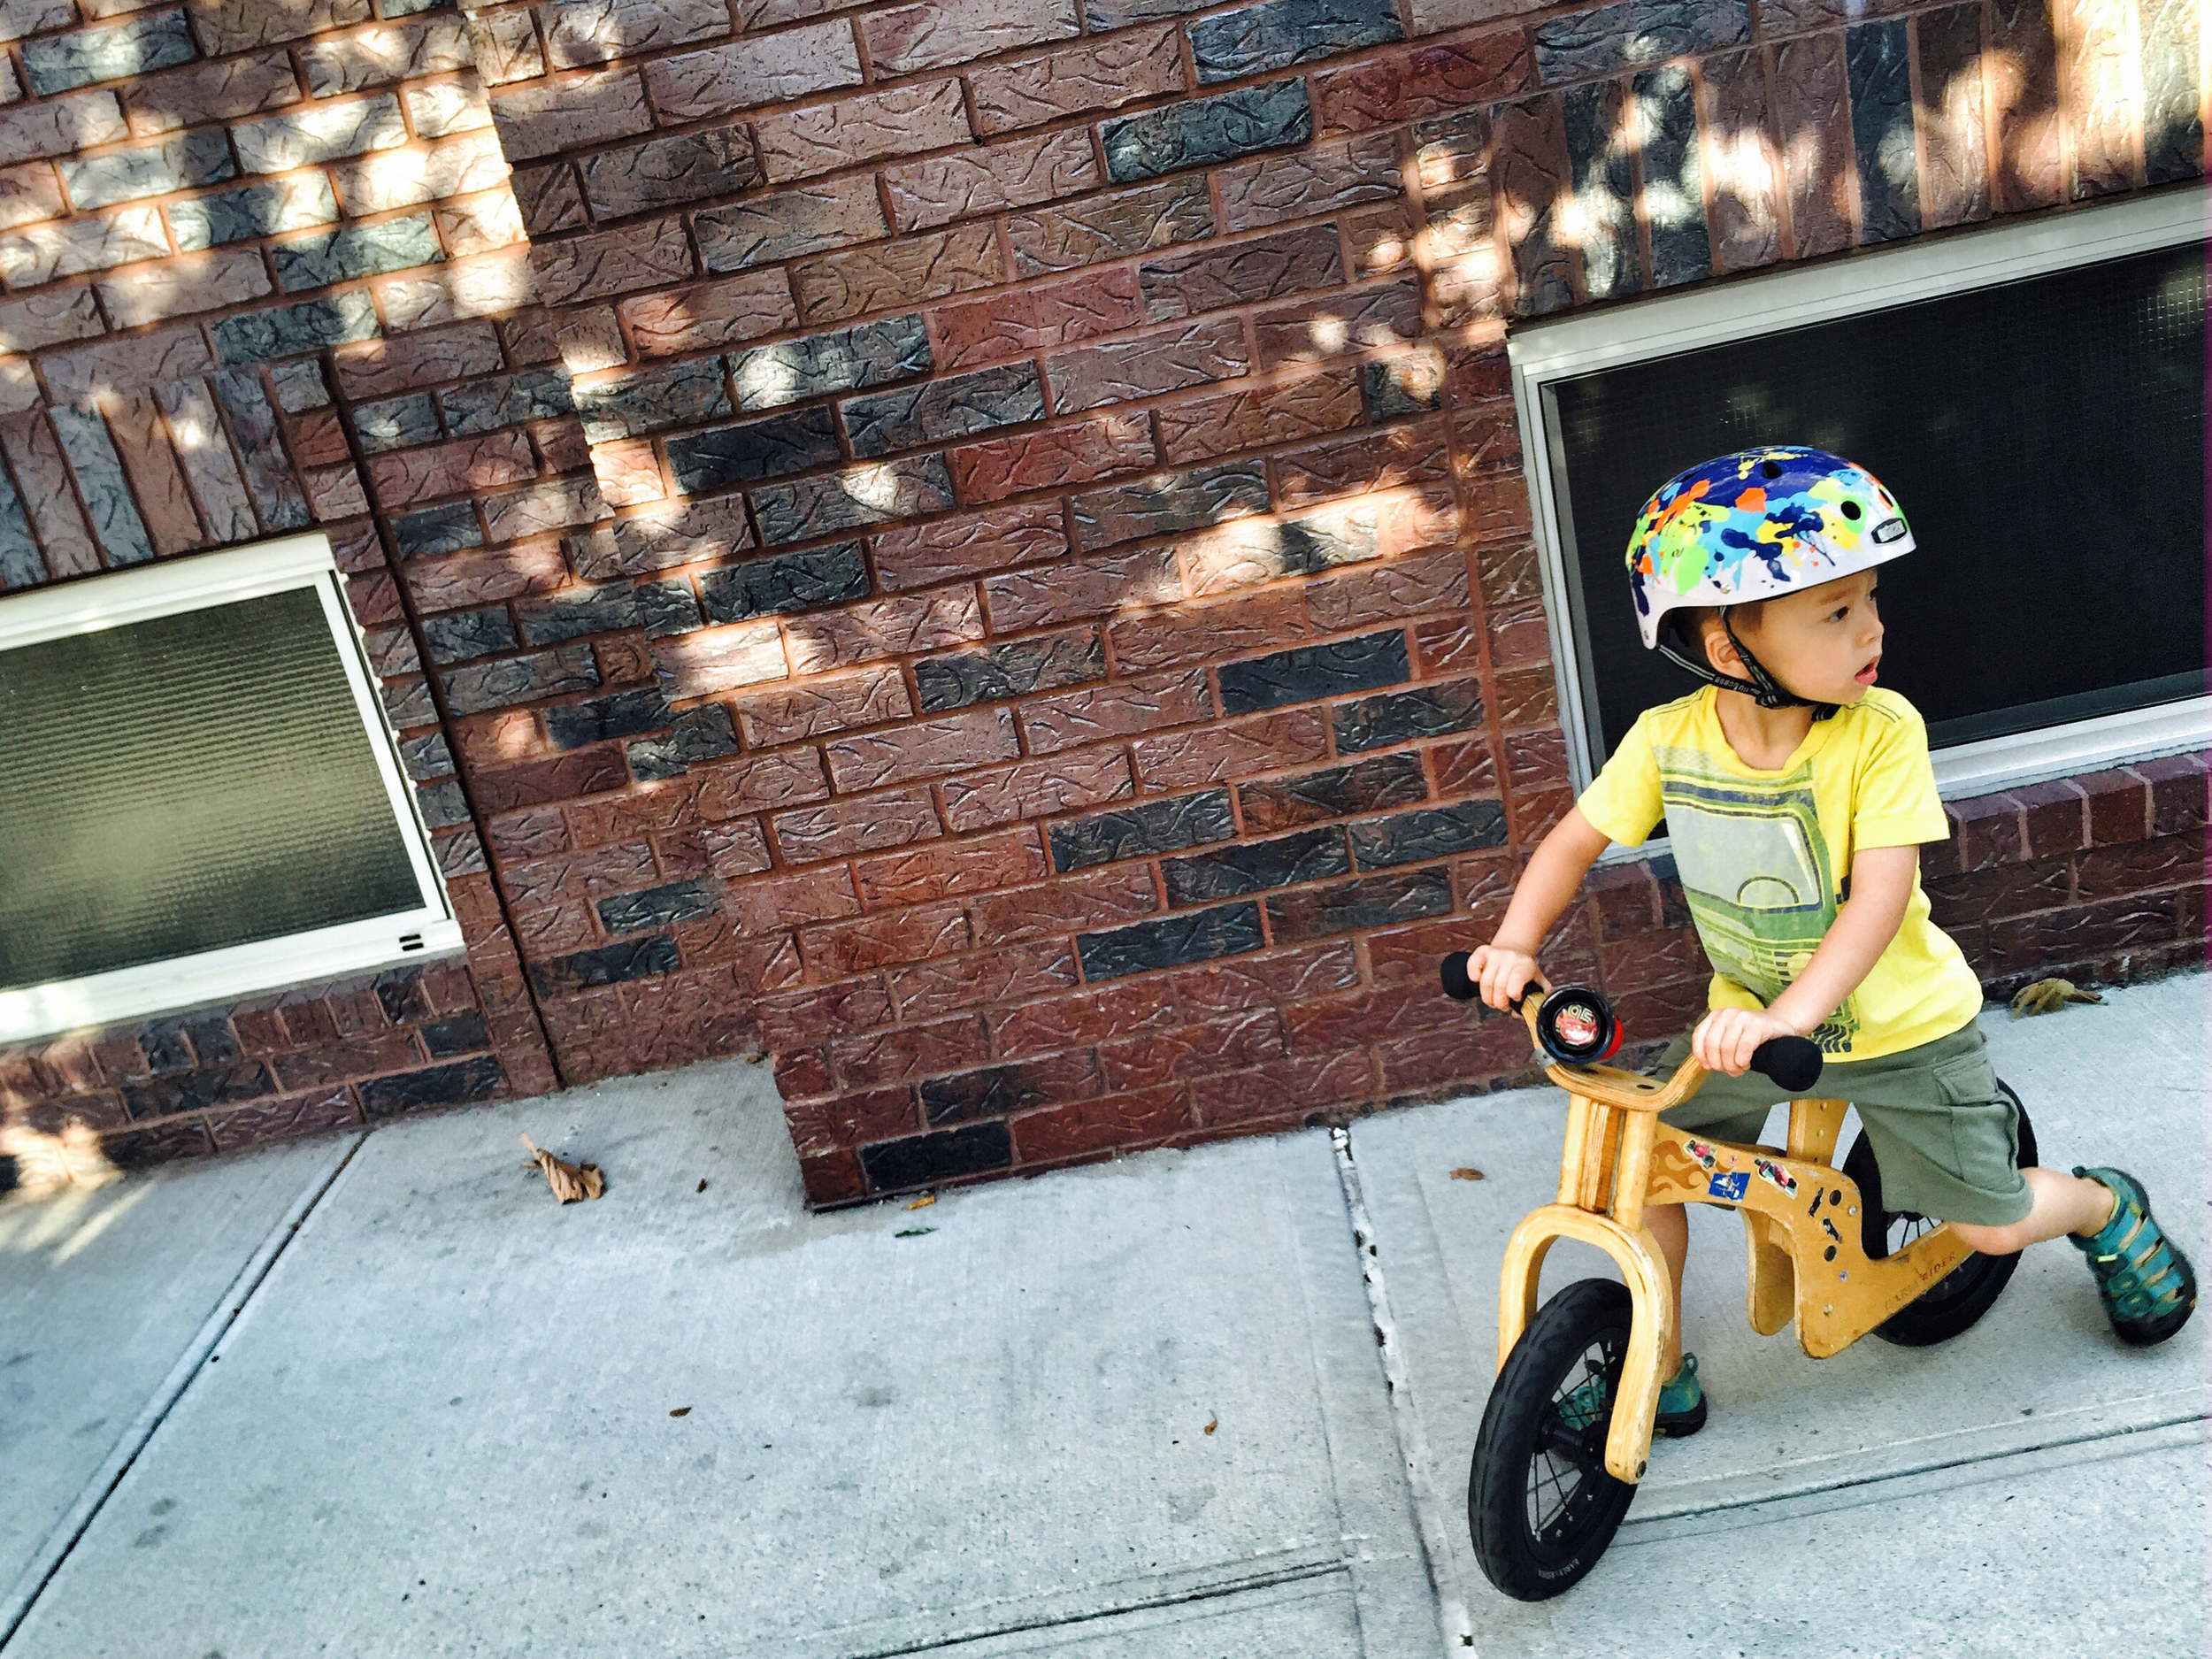 My kids both were totally engrossed with their bikes when they were little.